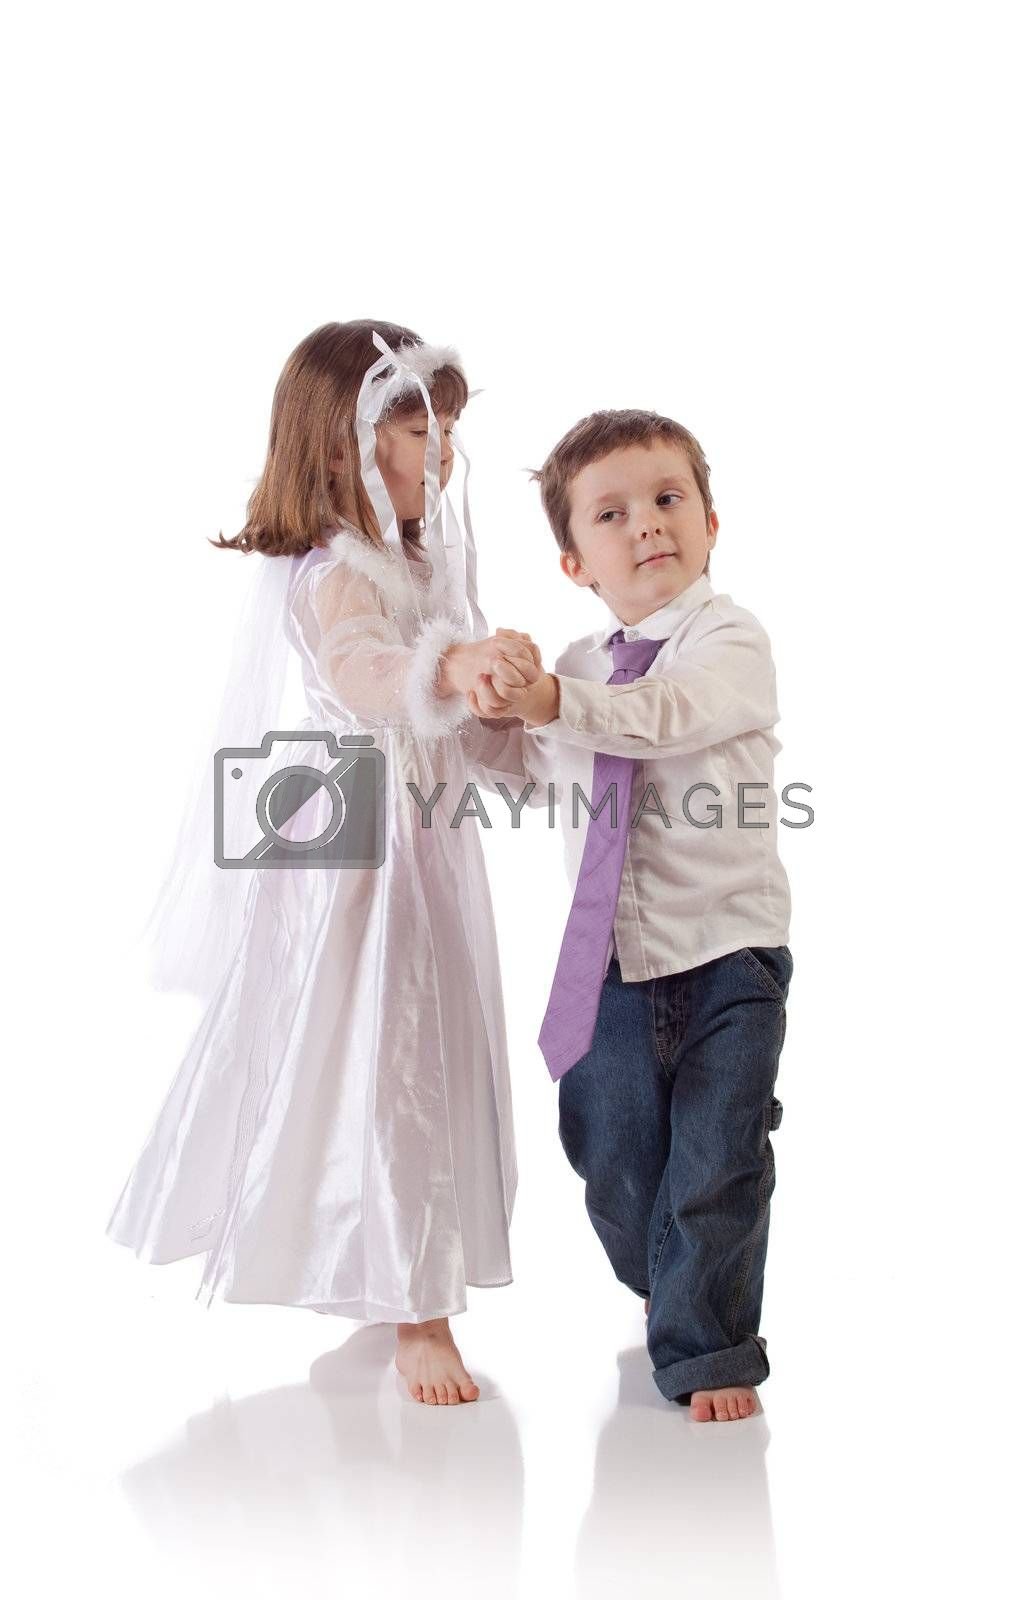 Cute little boy and girl dancing together